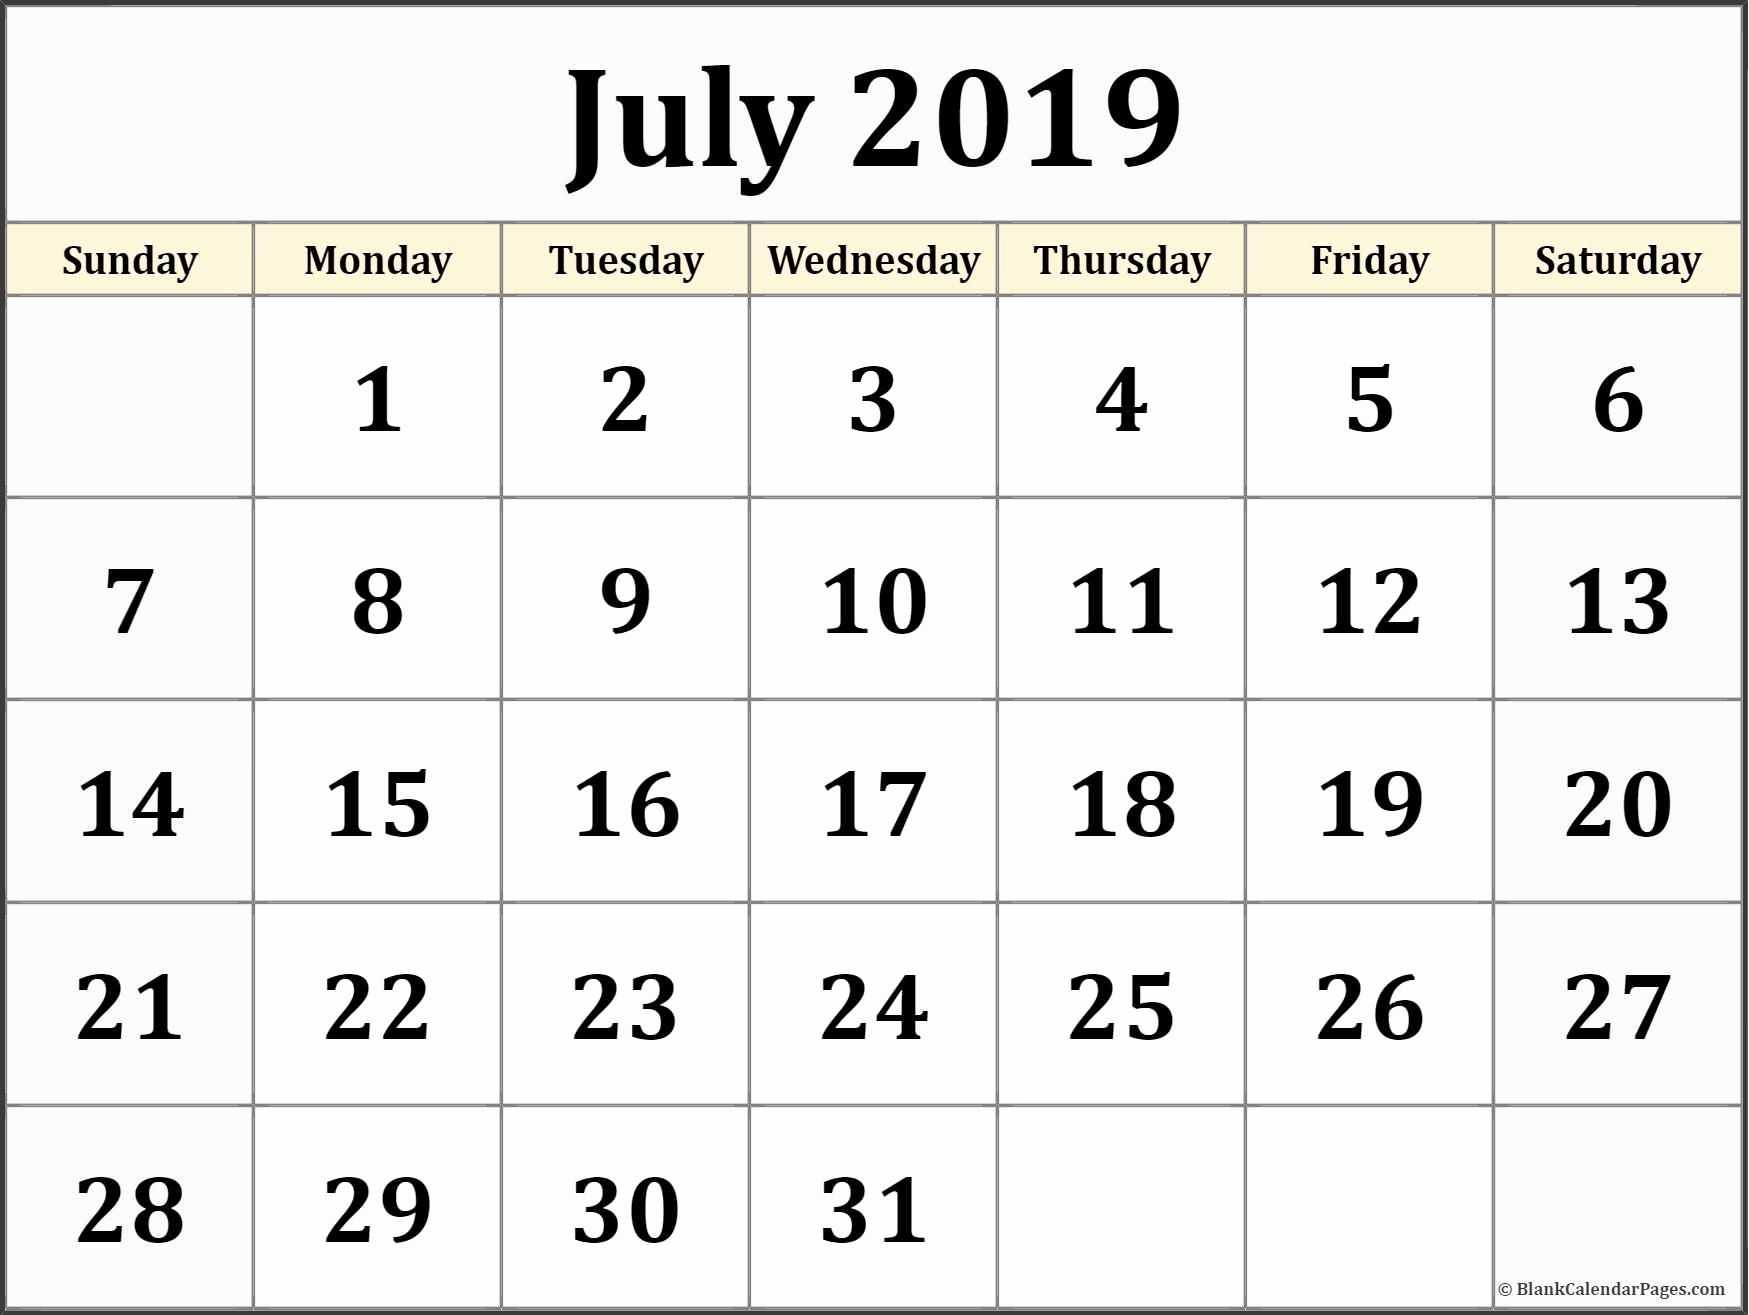 July 2019 Calendar Printable Template In Pdf Word Excel